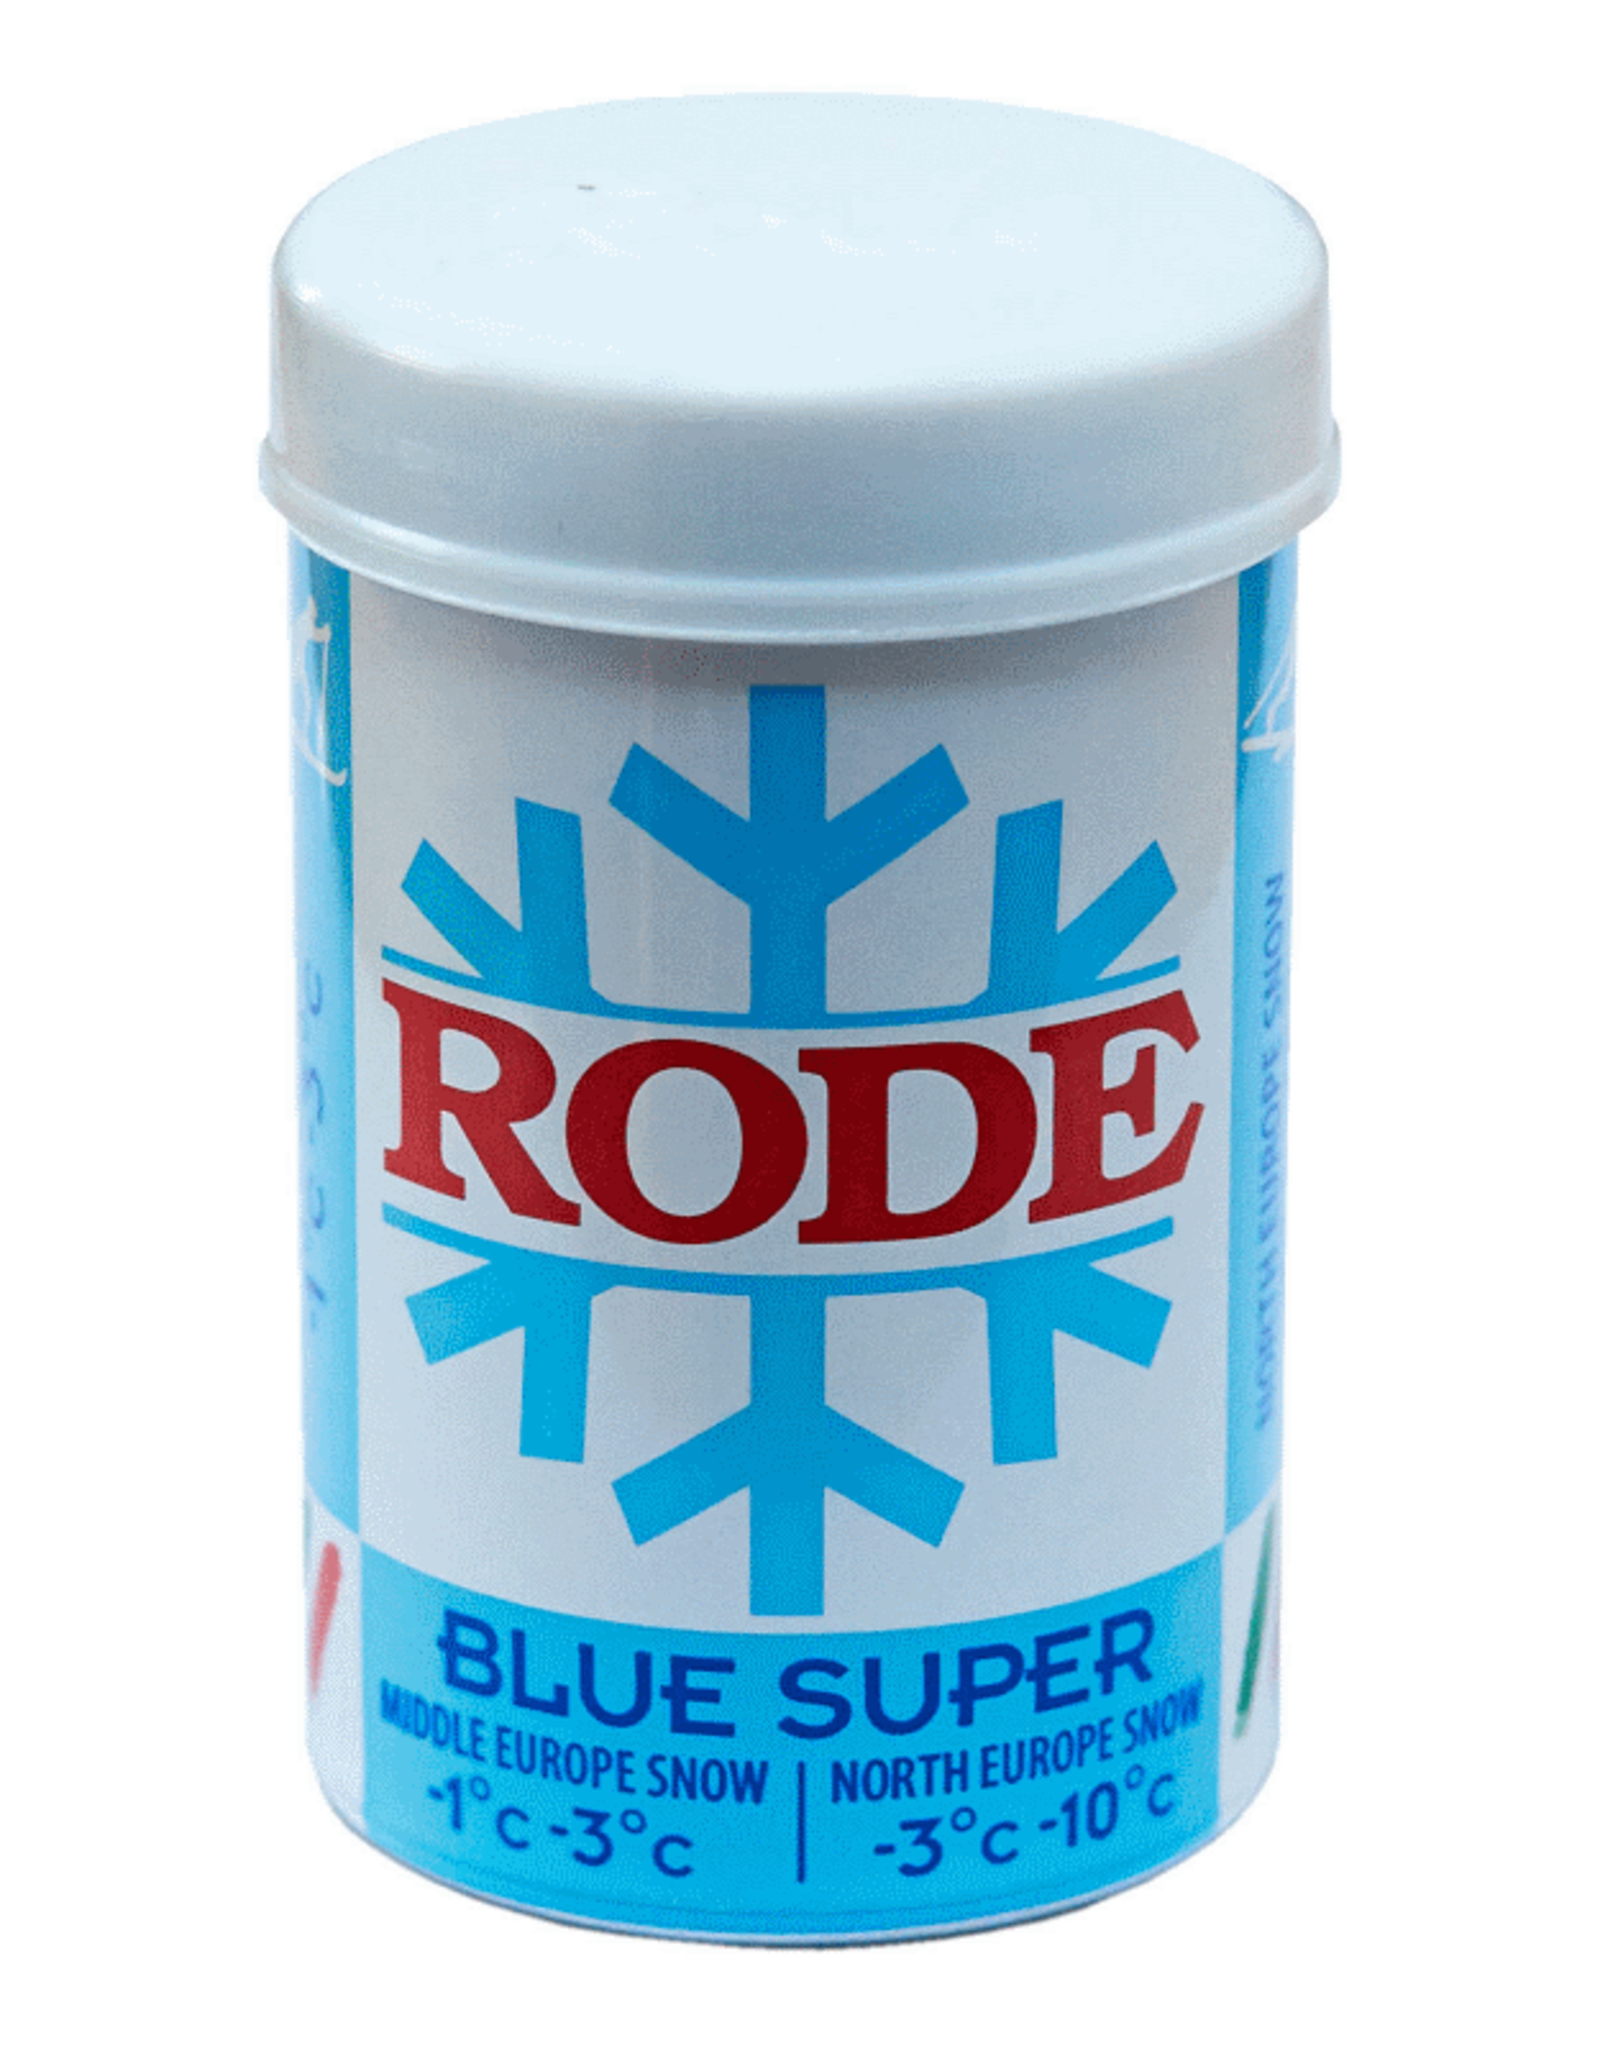 Rode Rode Kick Blue Super